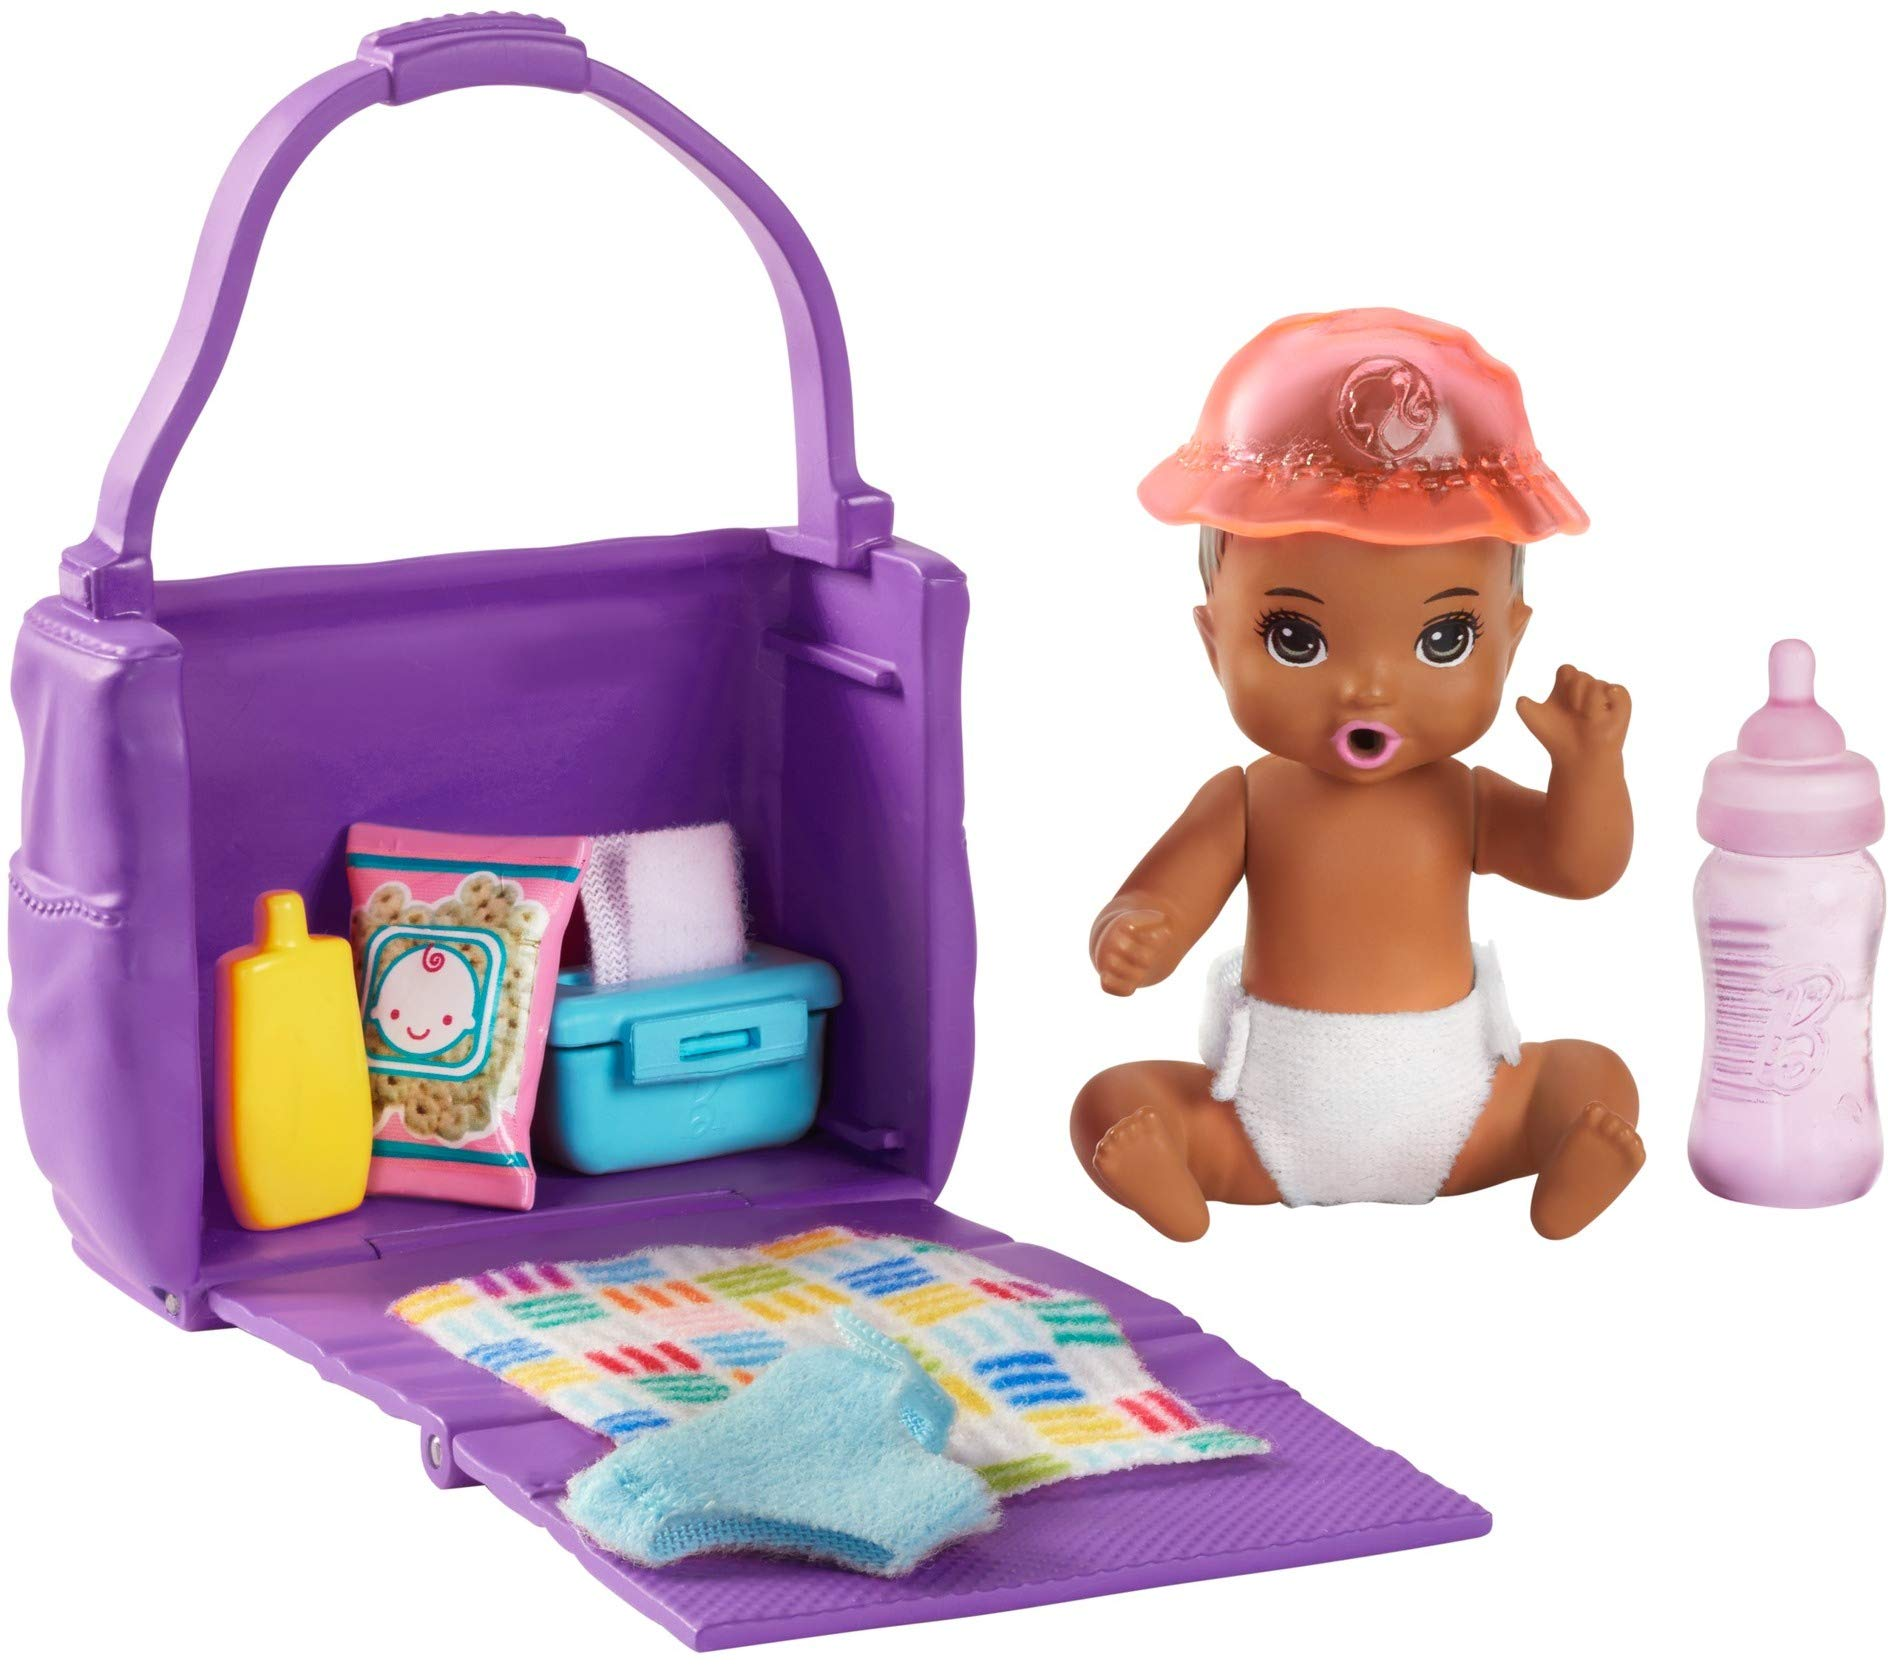 Barbie Skipper Babysitters Inc. Feeding and Changing Playset with Color-Change Baby Doll, Diaper Bag and Accessories